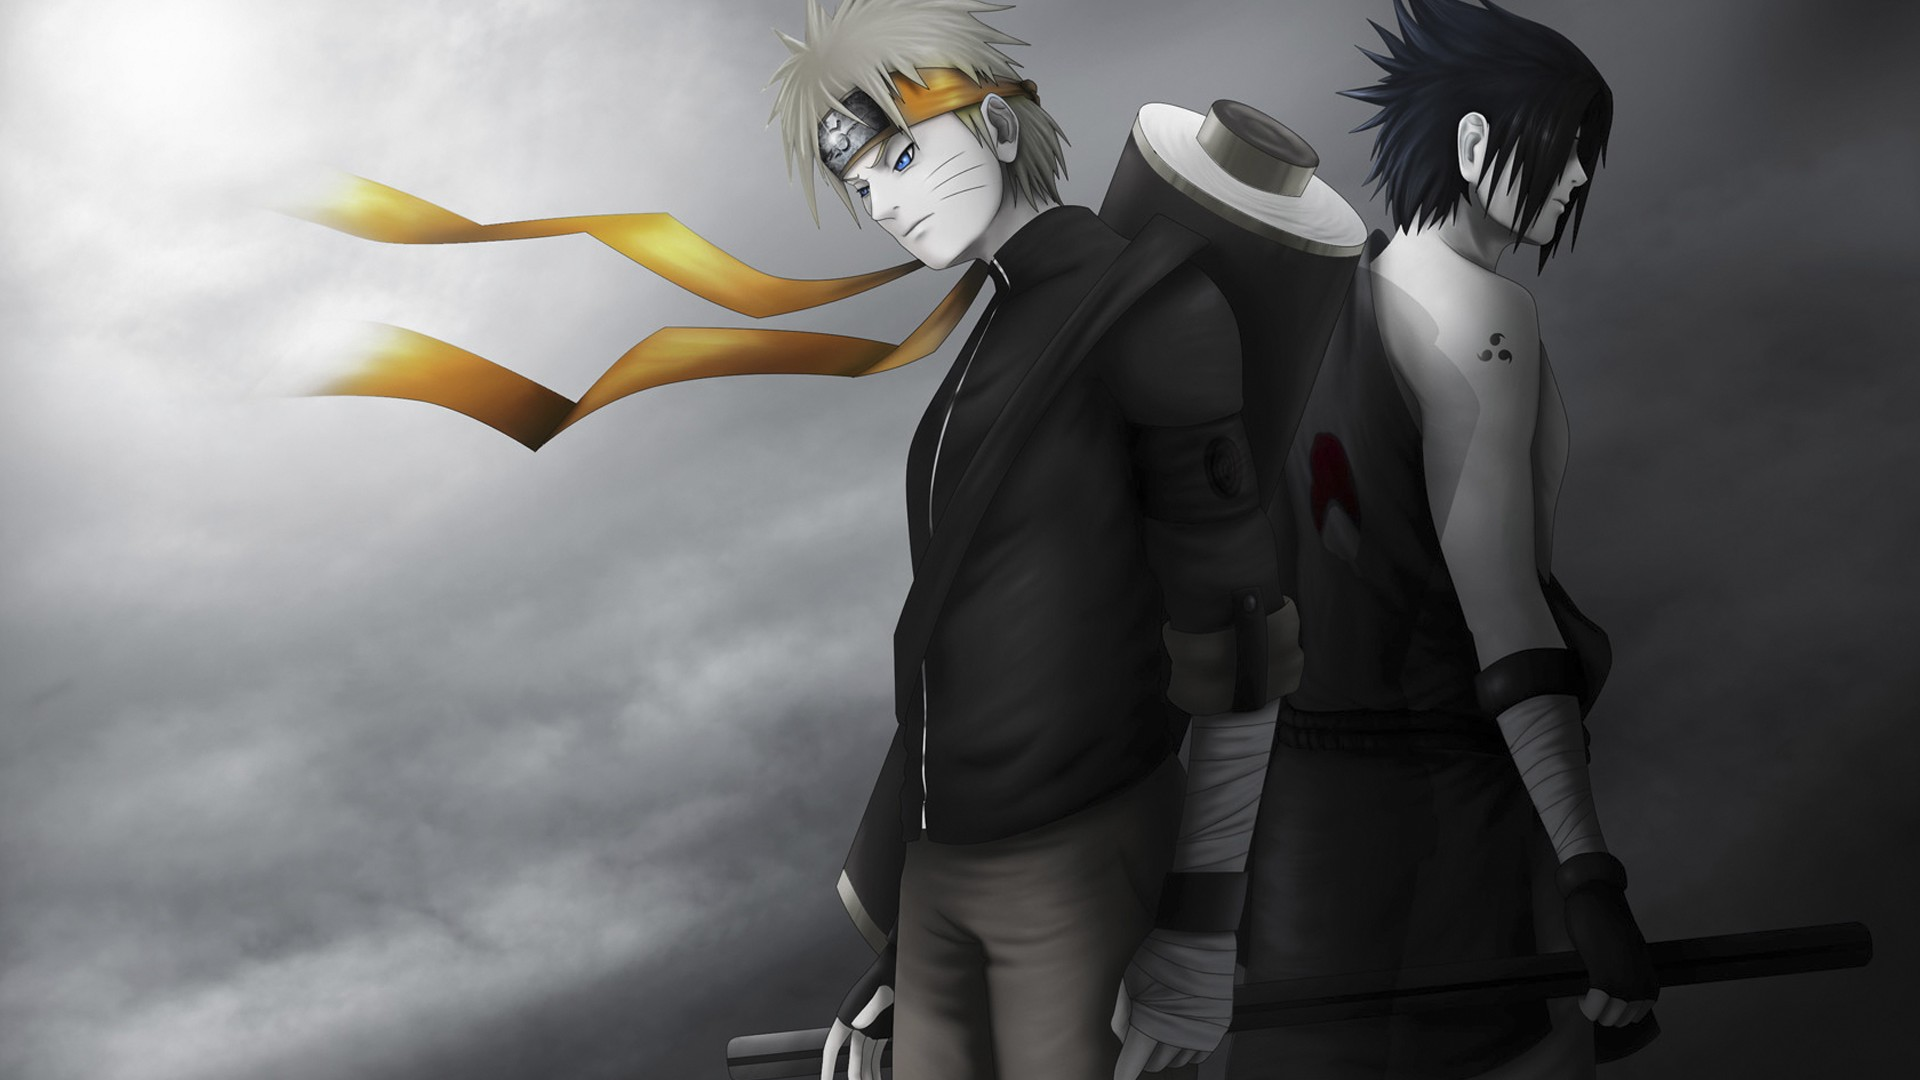 Cool-hd-anime-naruto-For-Windows-with-hd-anime-naruto-Download-H-wallpaper-wp3604350